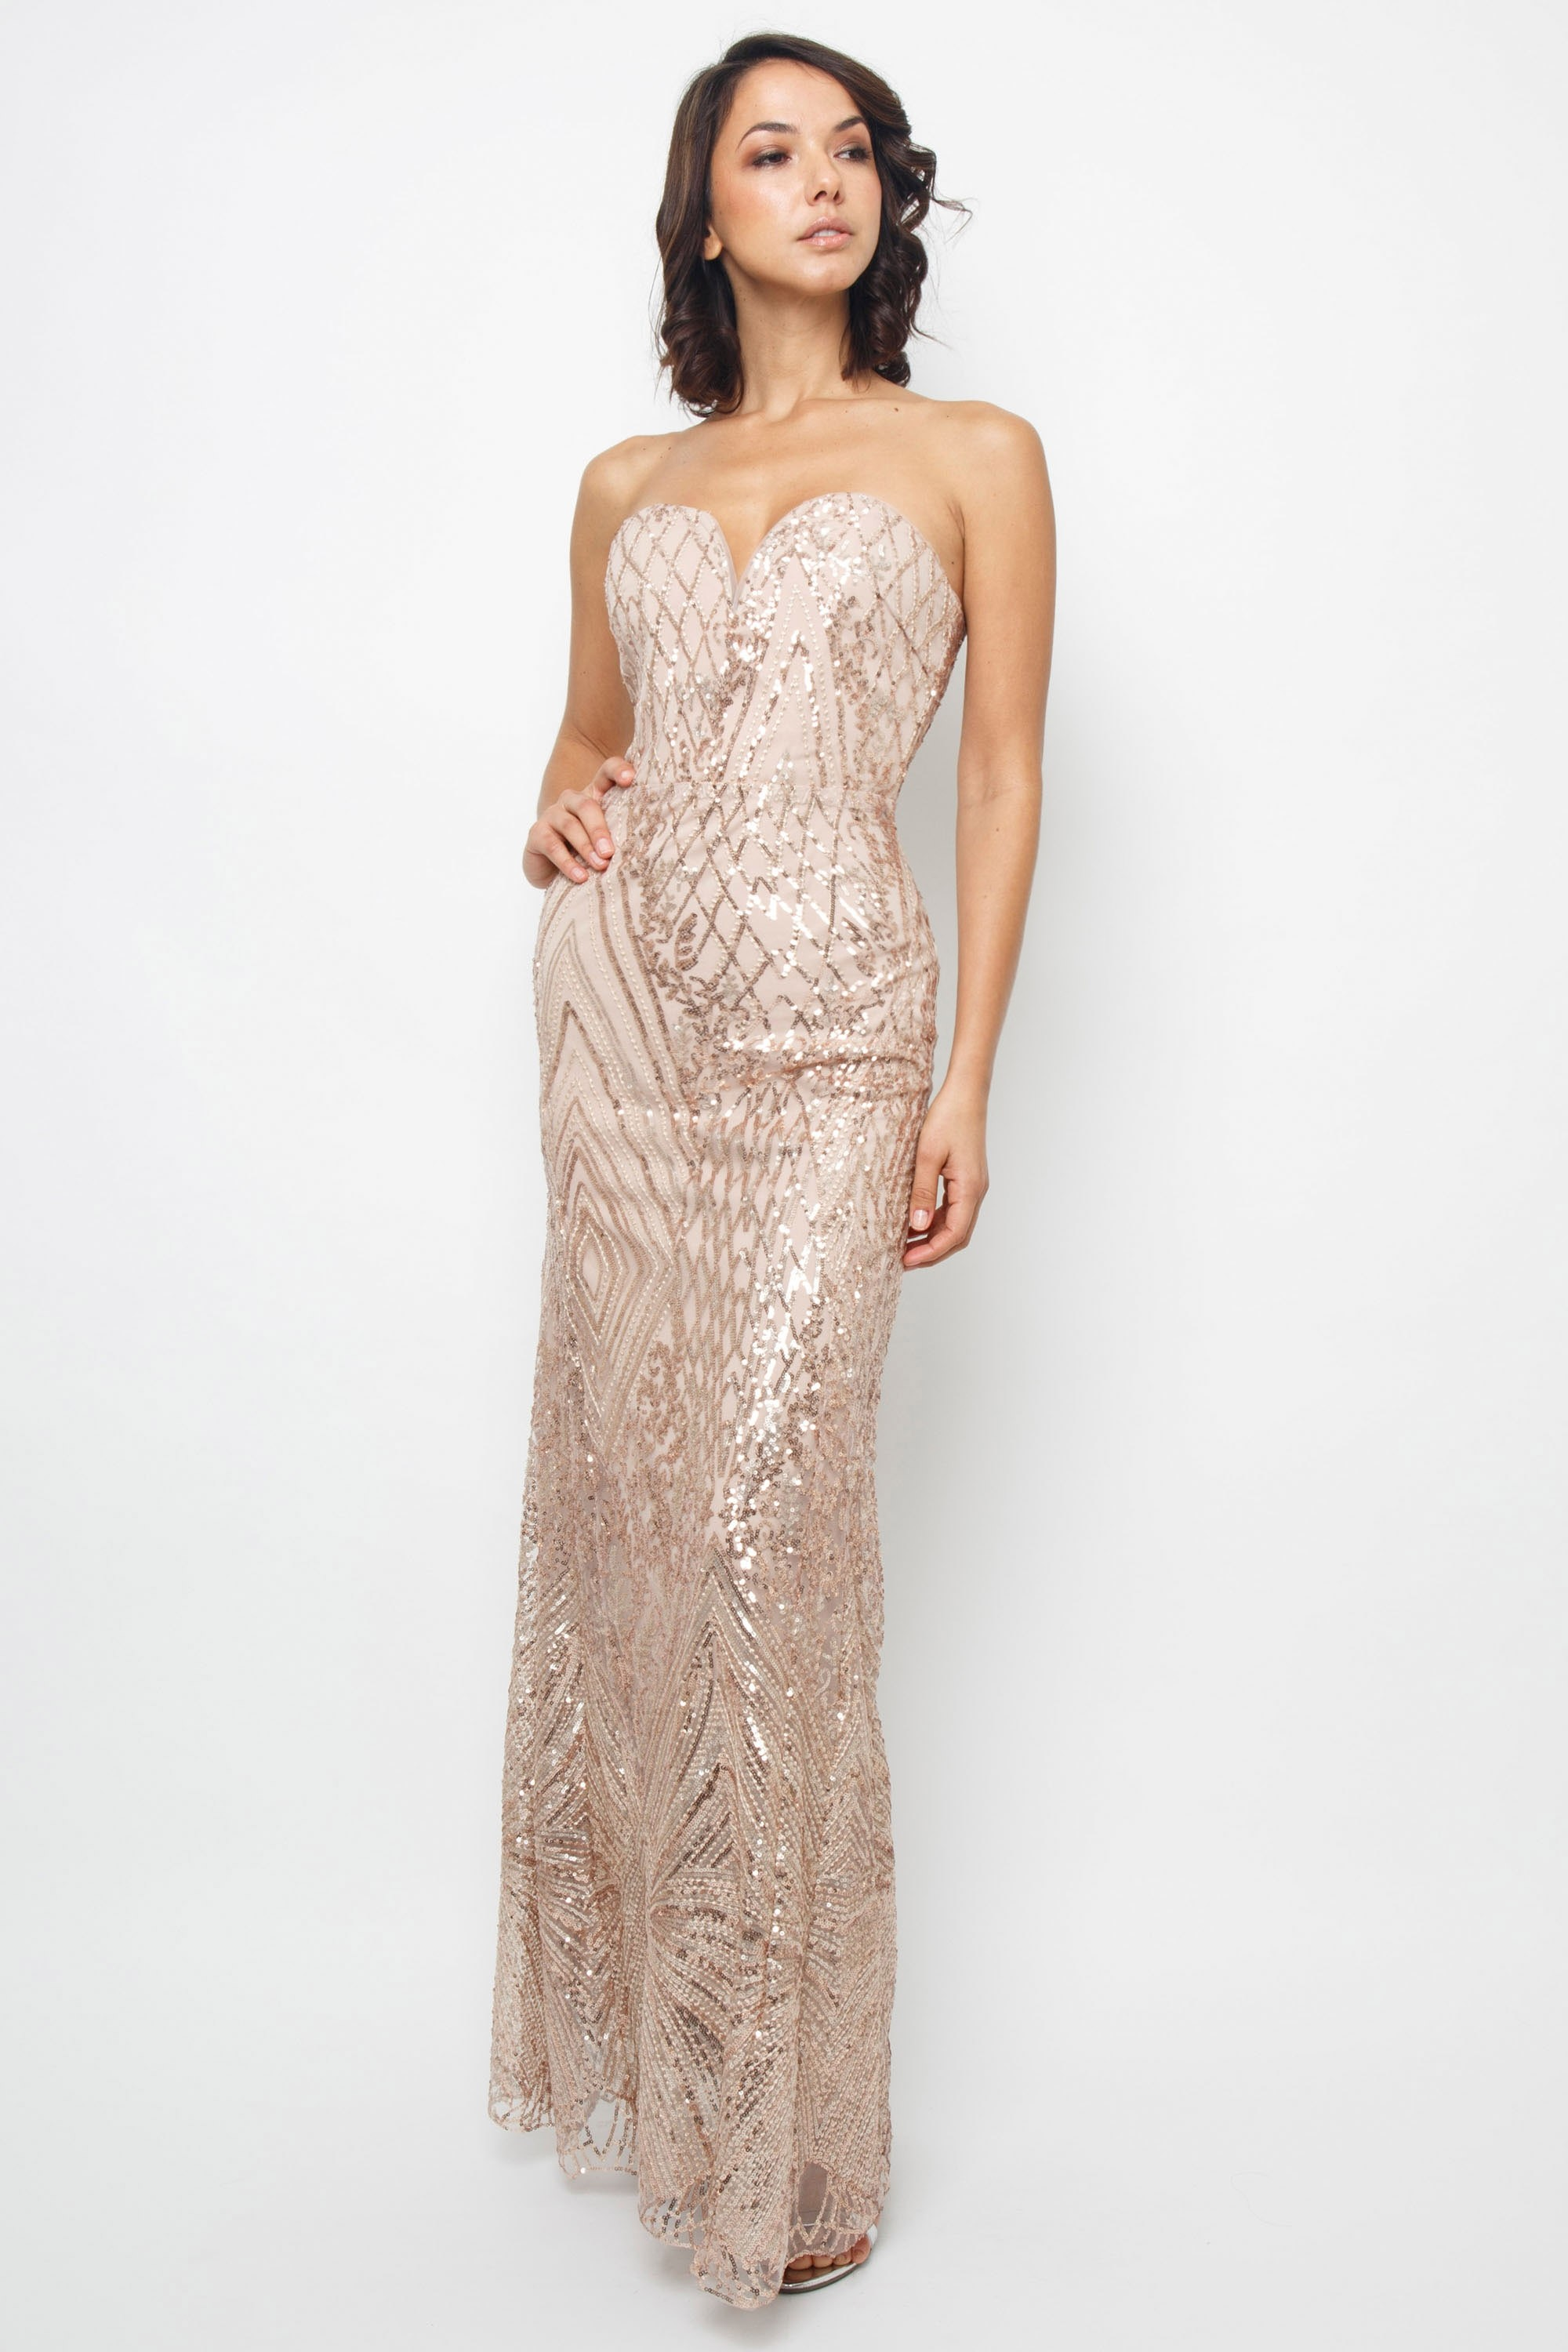 fashion styles compare price limited guantity TFNC GAYNOR ROSE GOLD SEQUIN MAXI DRESS | TFNC MAXI DRESS